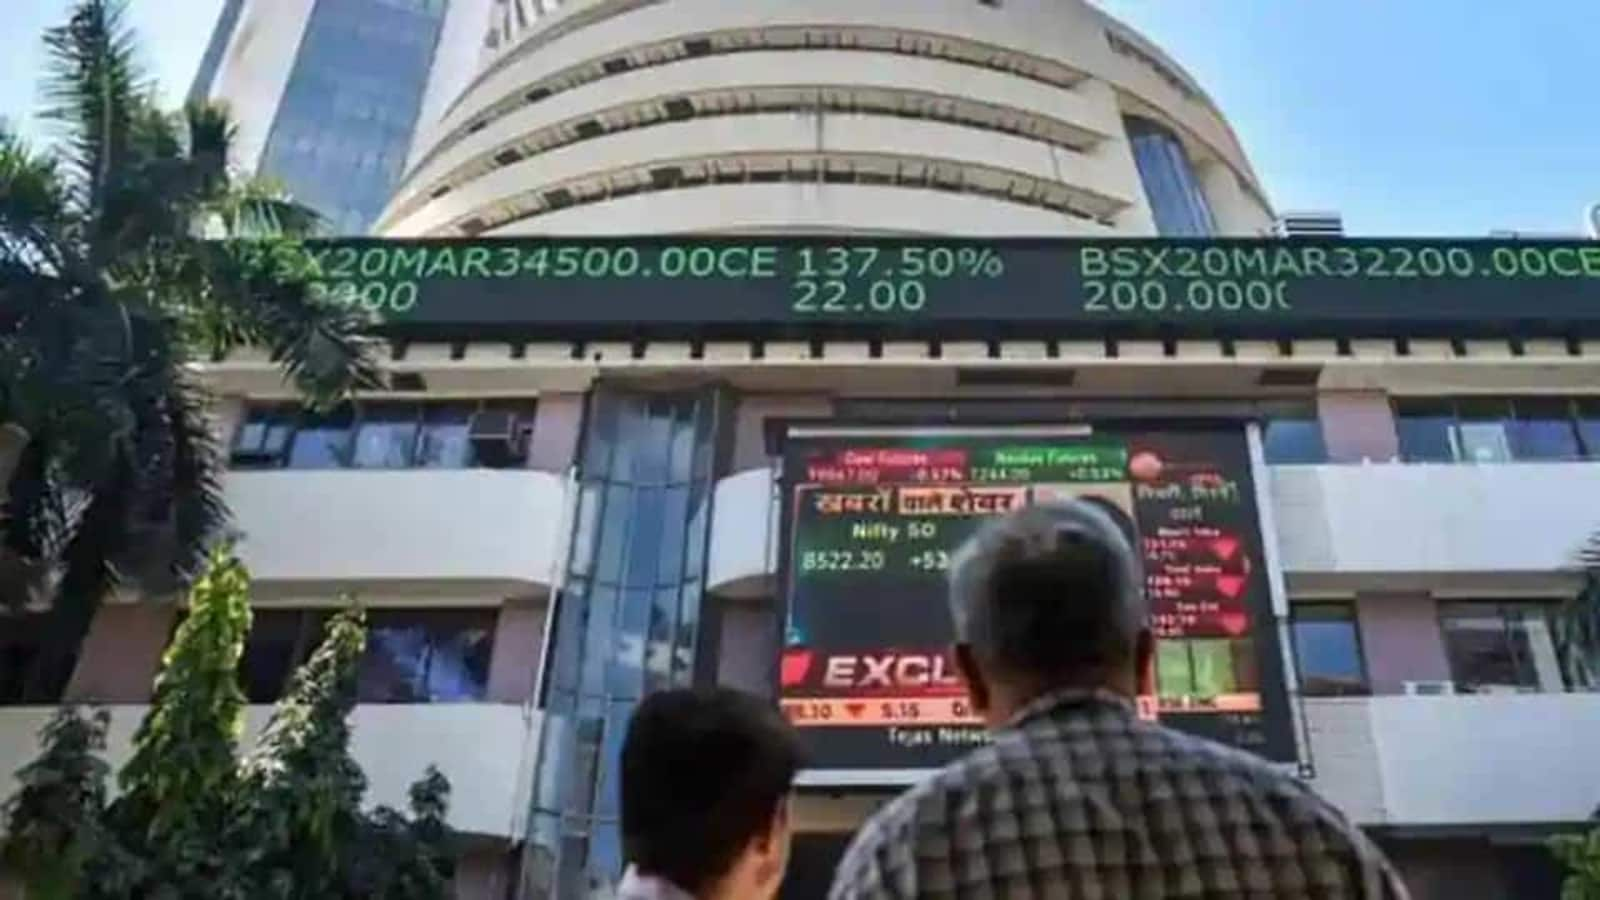 Sensex opens 250 points higher at 50,678; Nifty begins session above 15,000-level